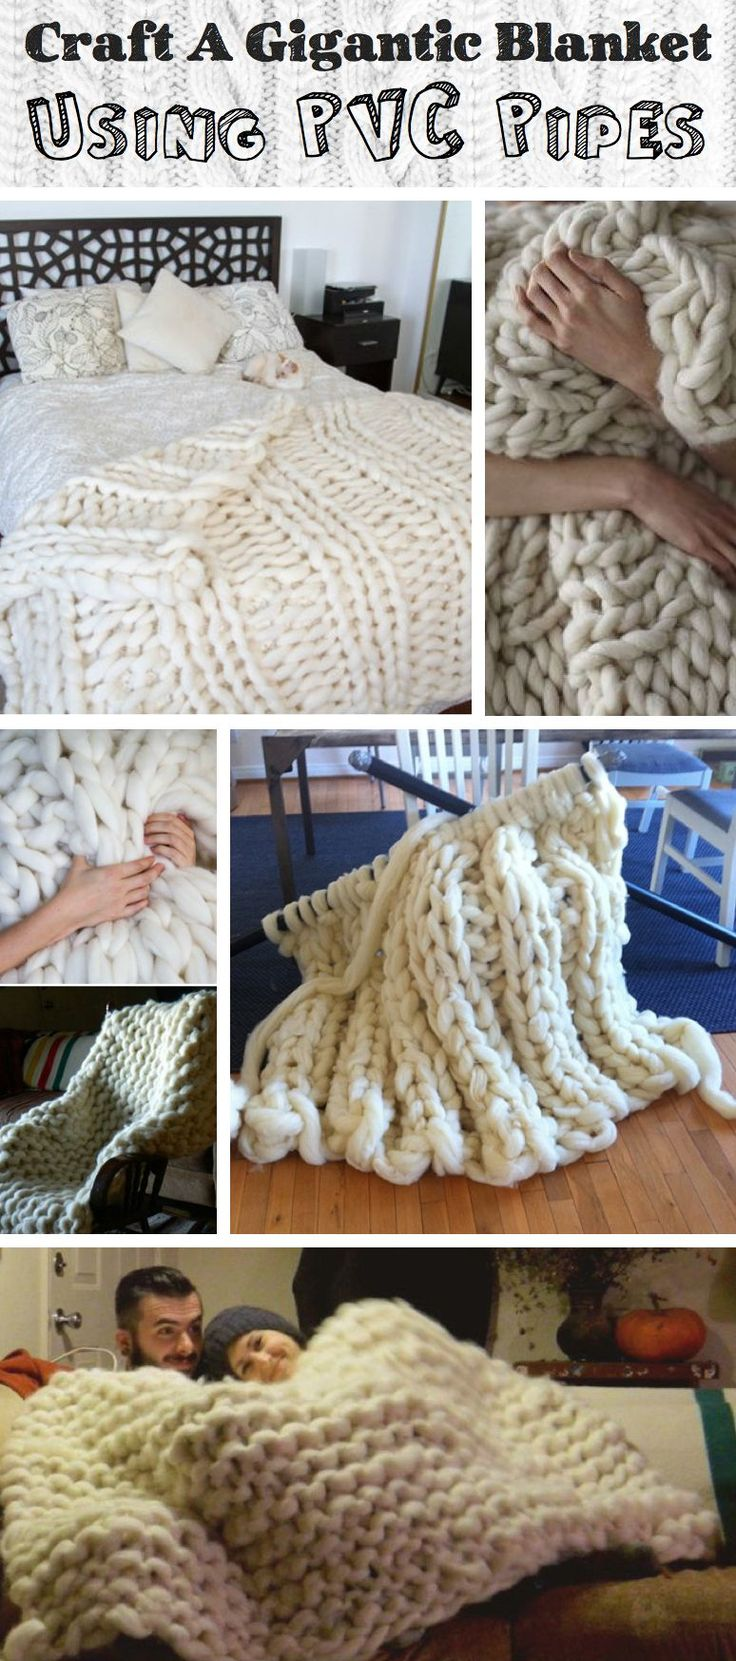 GIGANTIC CROCHET BLANKET